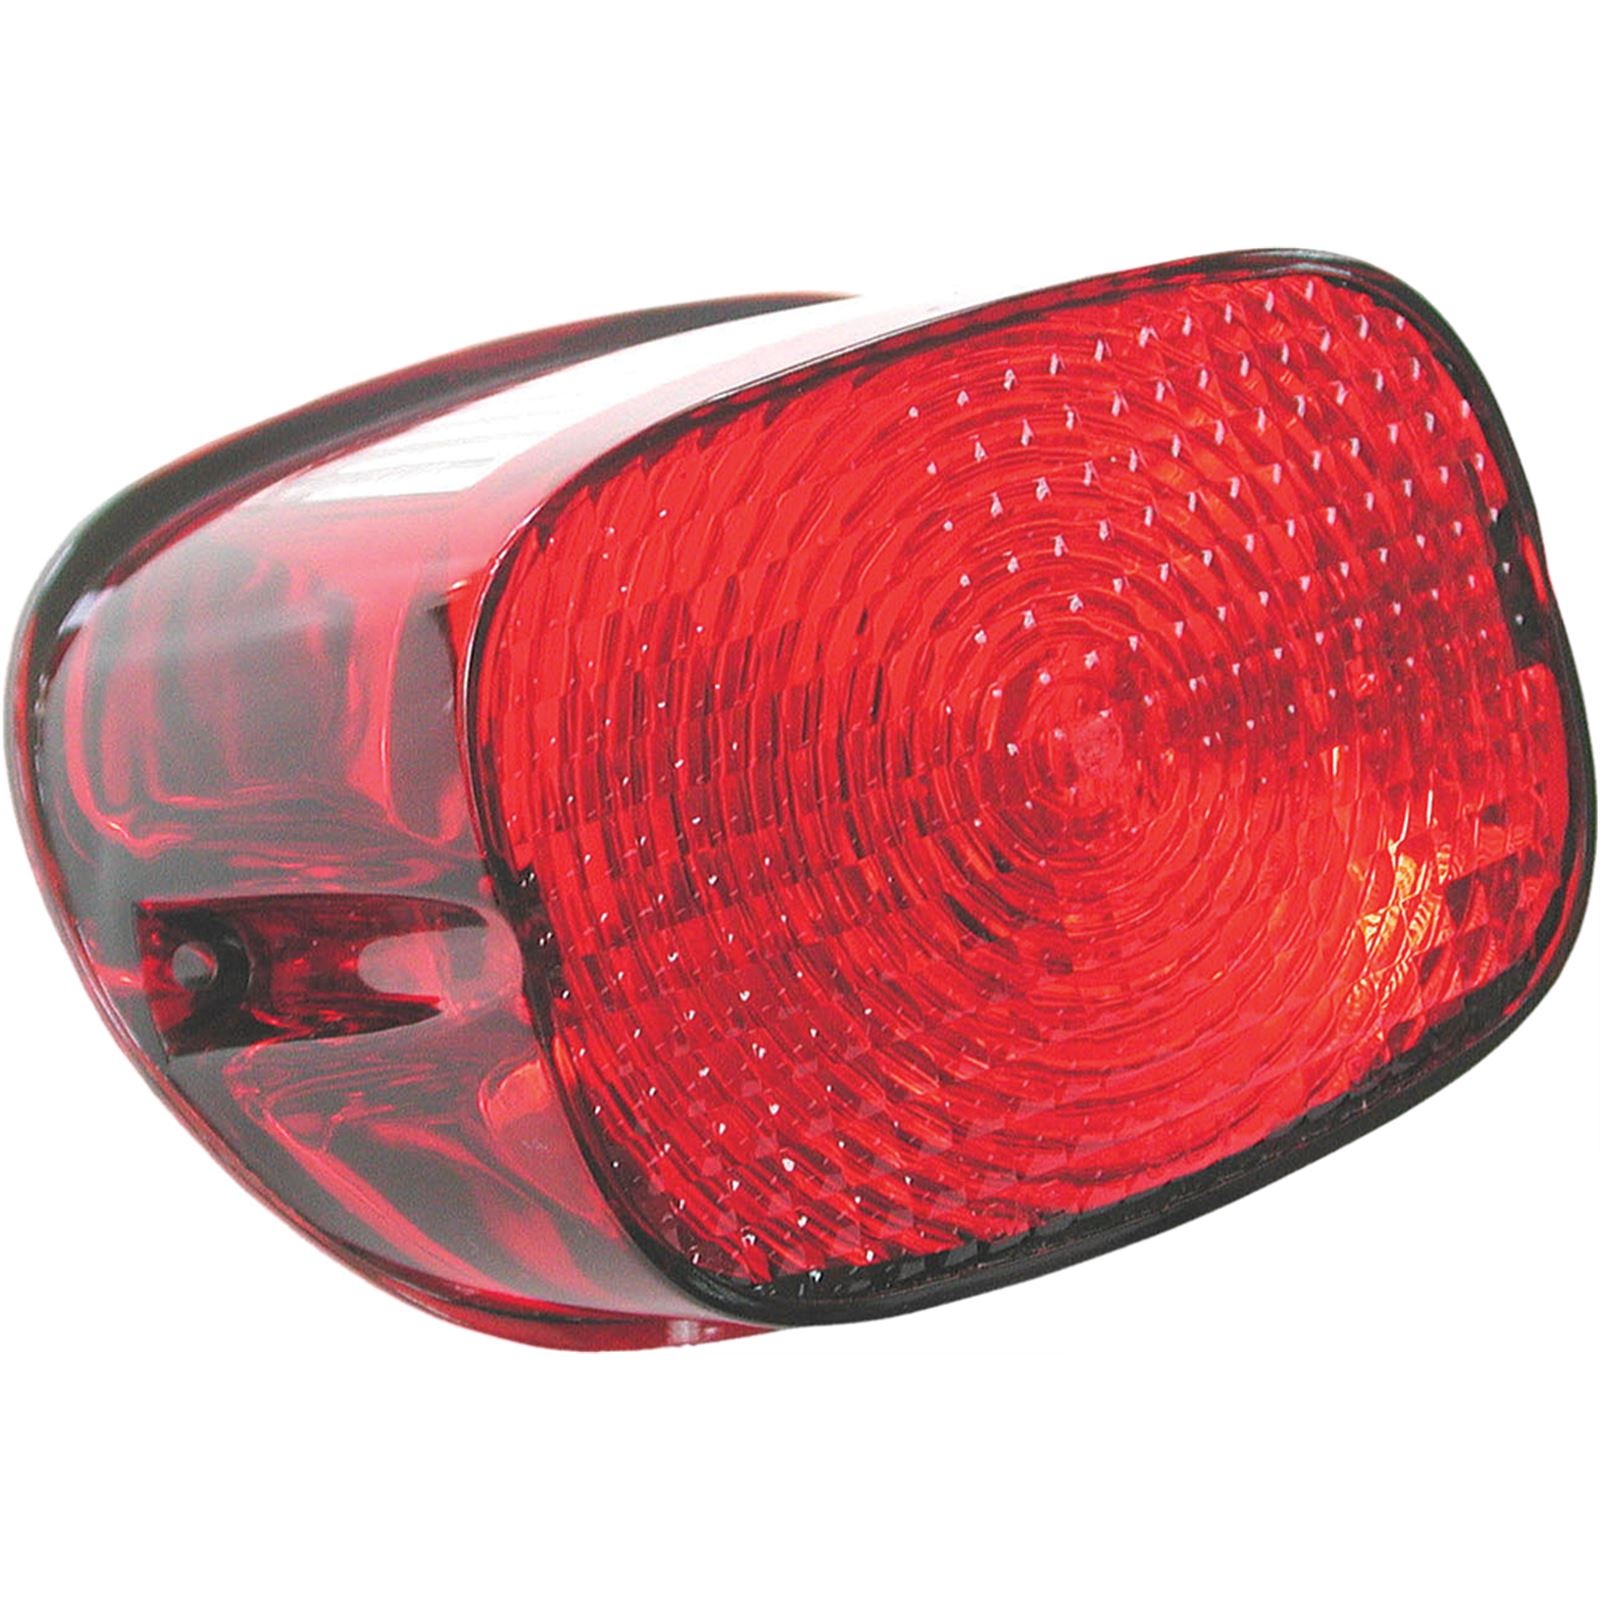 Harddrive OE Style Taillight Lens